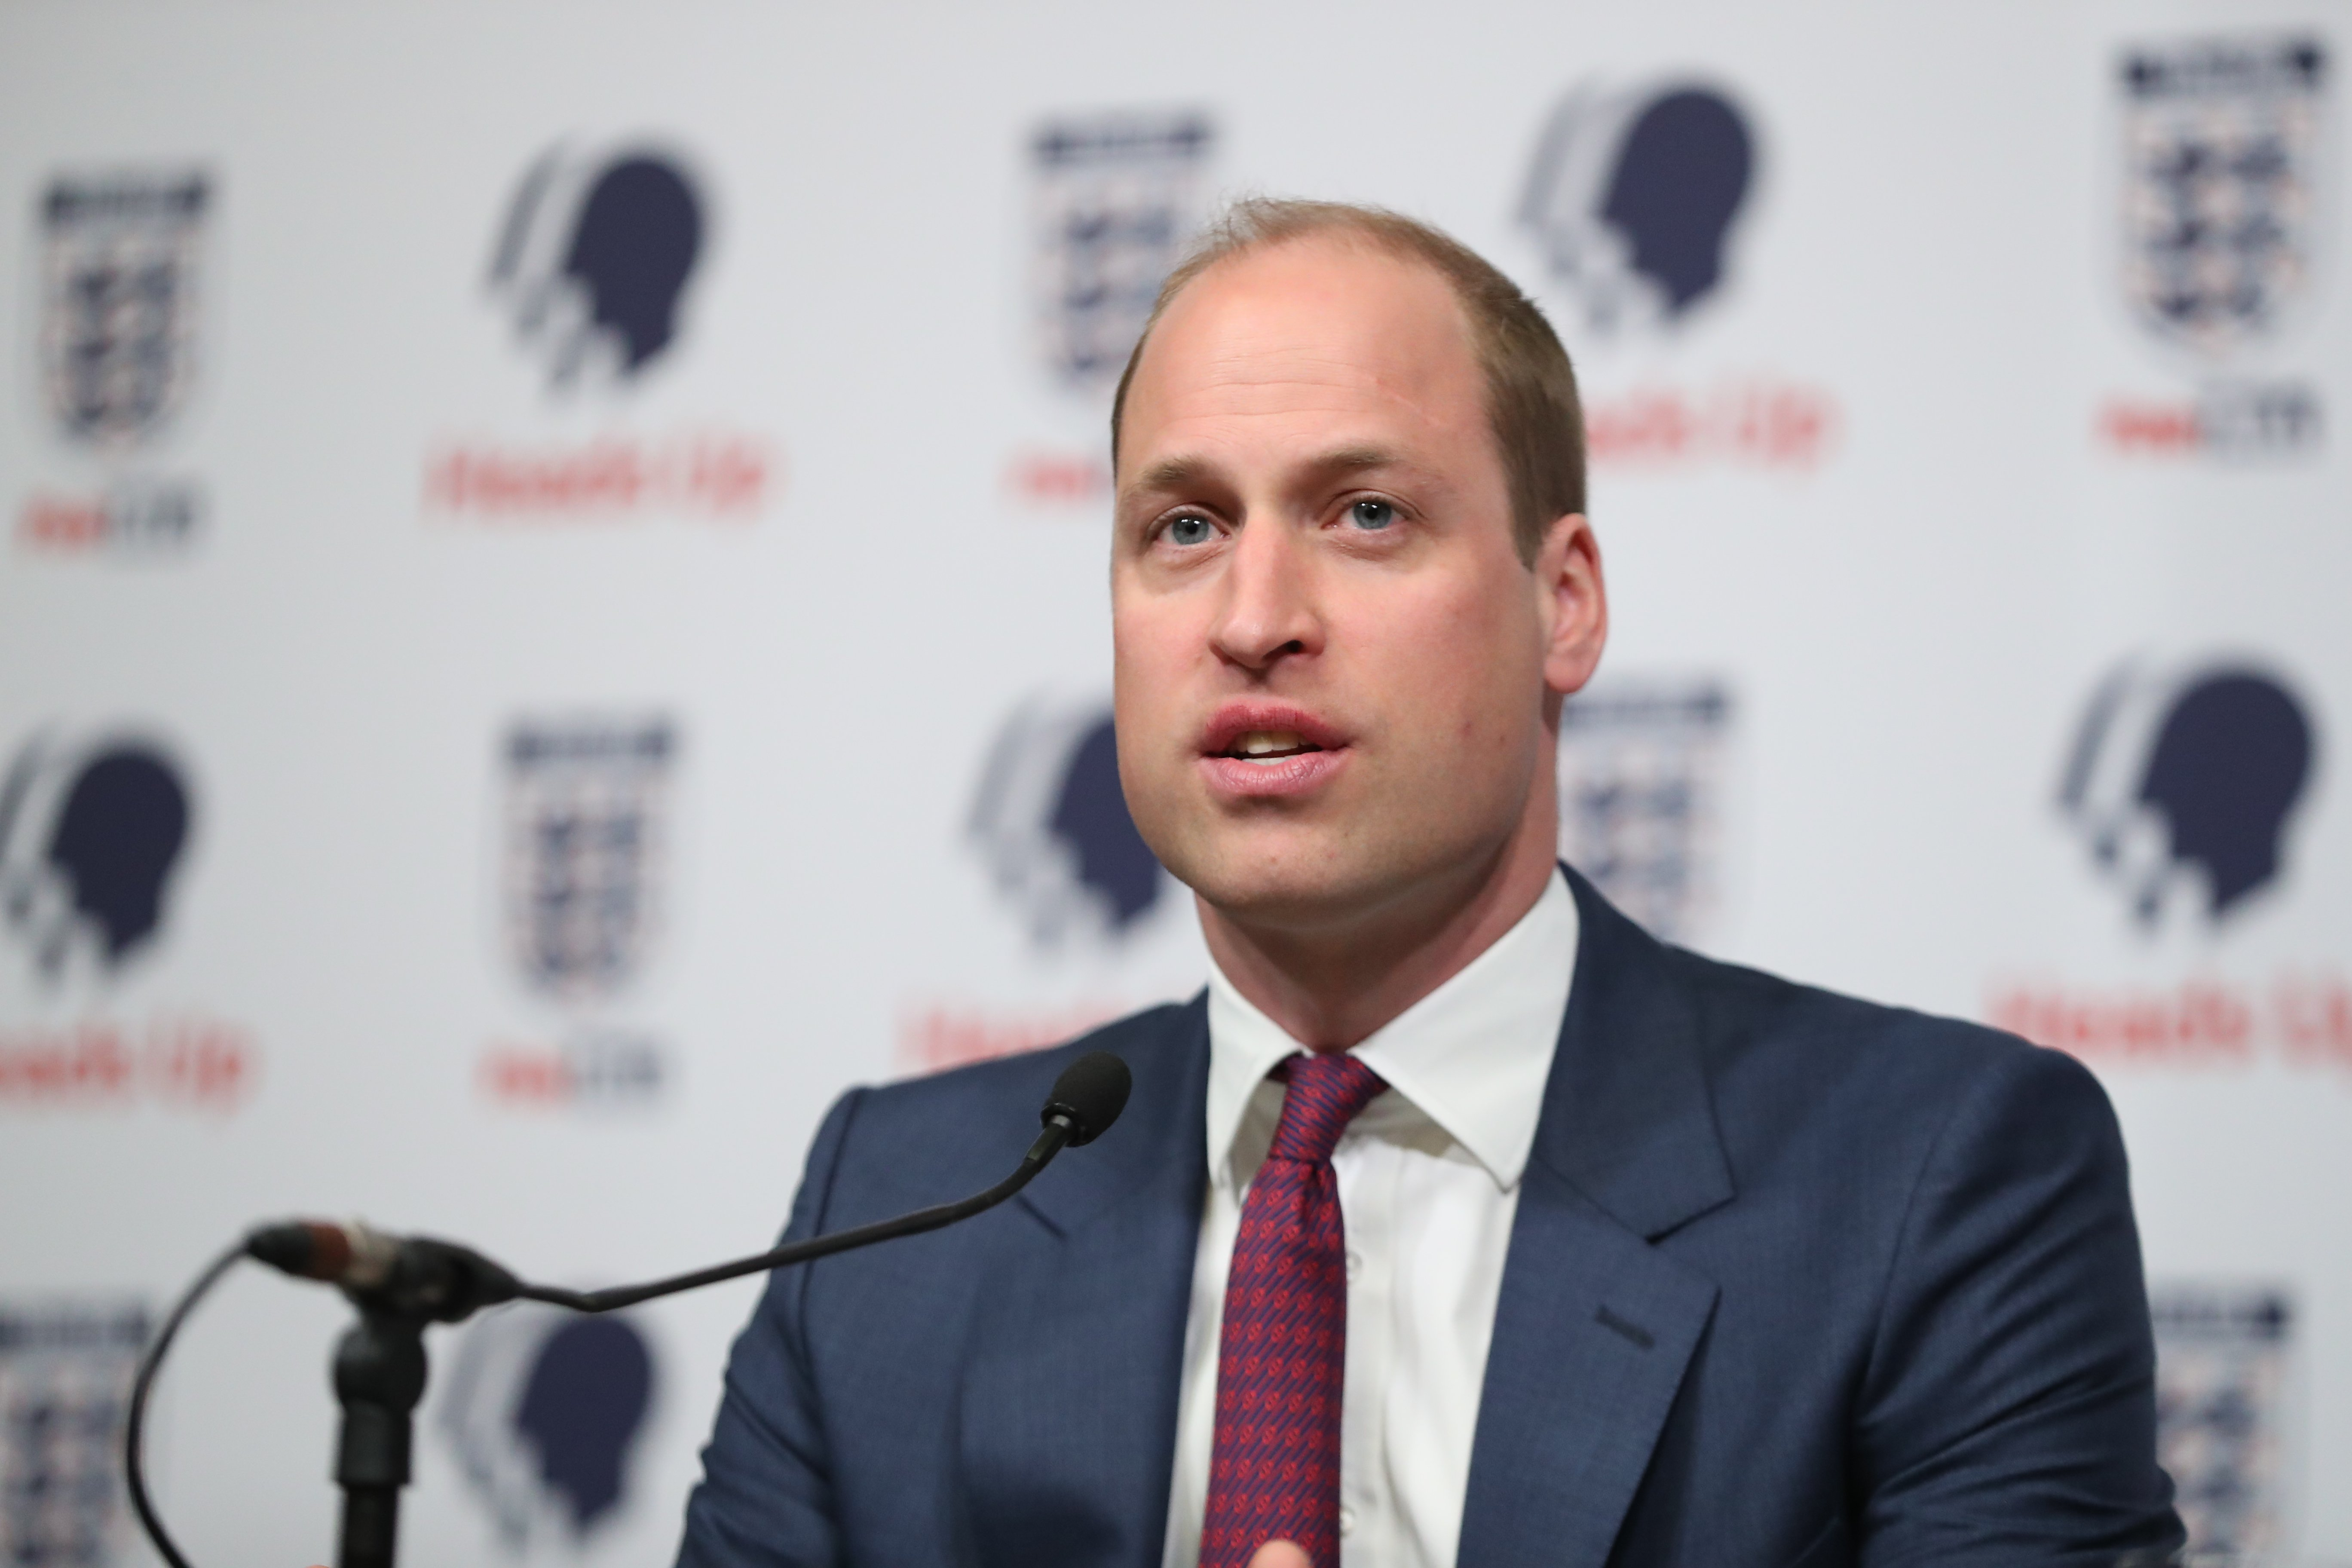 Prince William at the launch of a new mental health campaign at Wembley Stadium | Photo: Getty Images